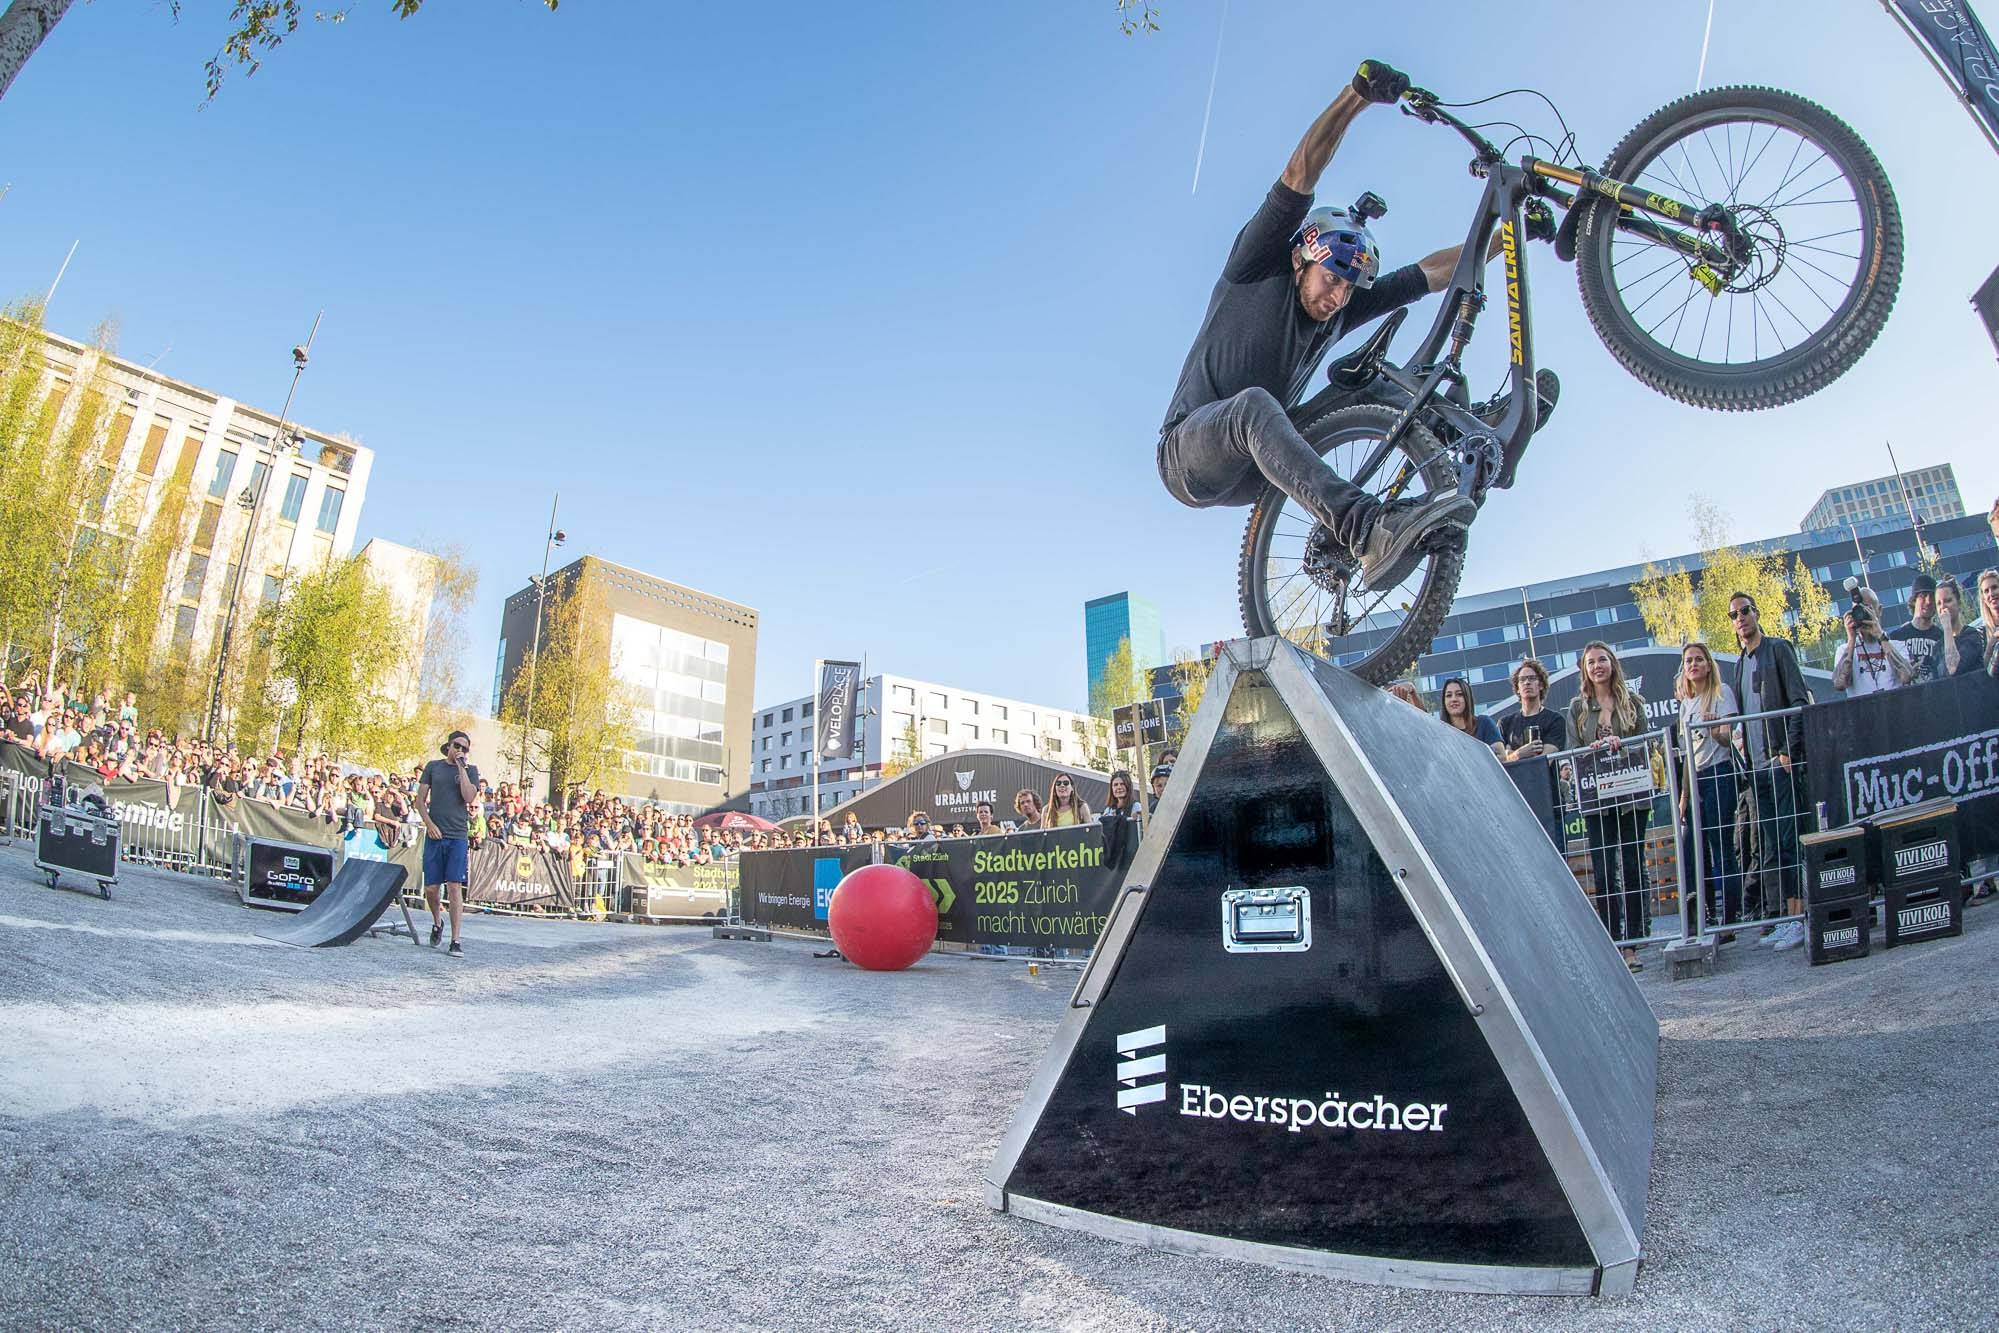 01_Urban-Bike-Festival-Zurich-Drop-Roll-Show-2017-Danny-MacAskill-Photo-by-Dave-Mackison